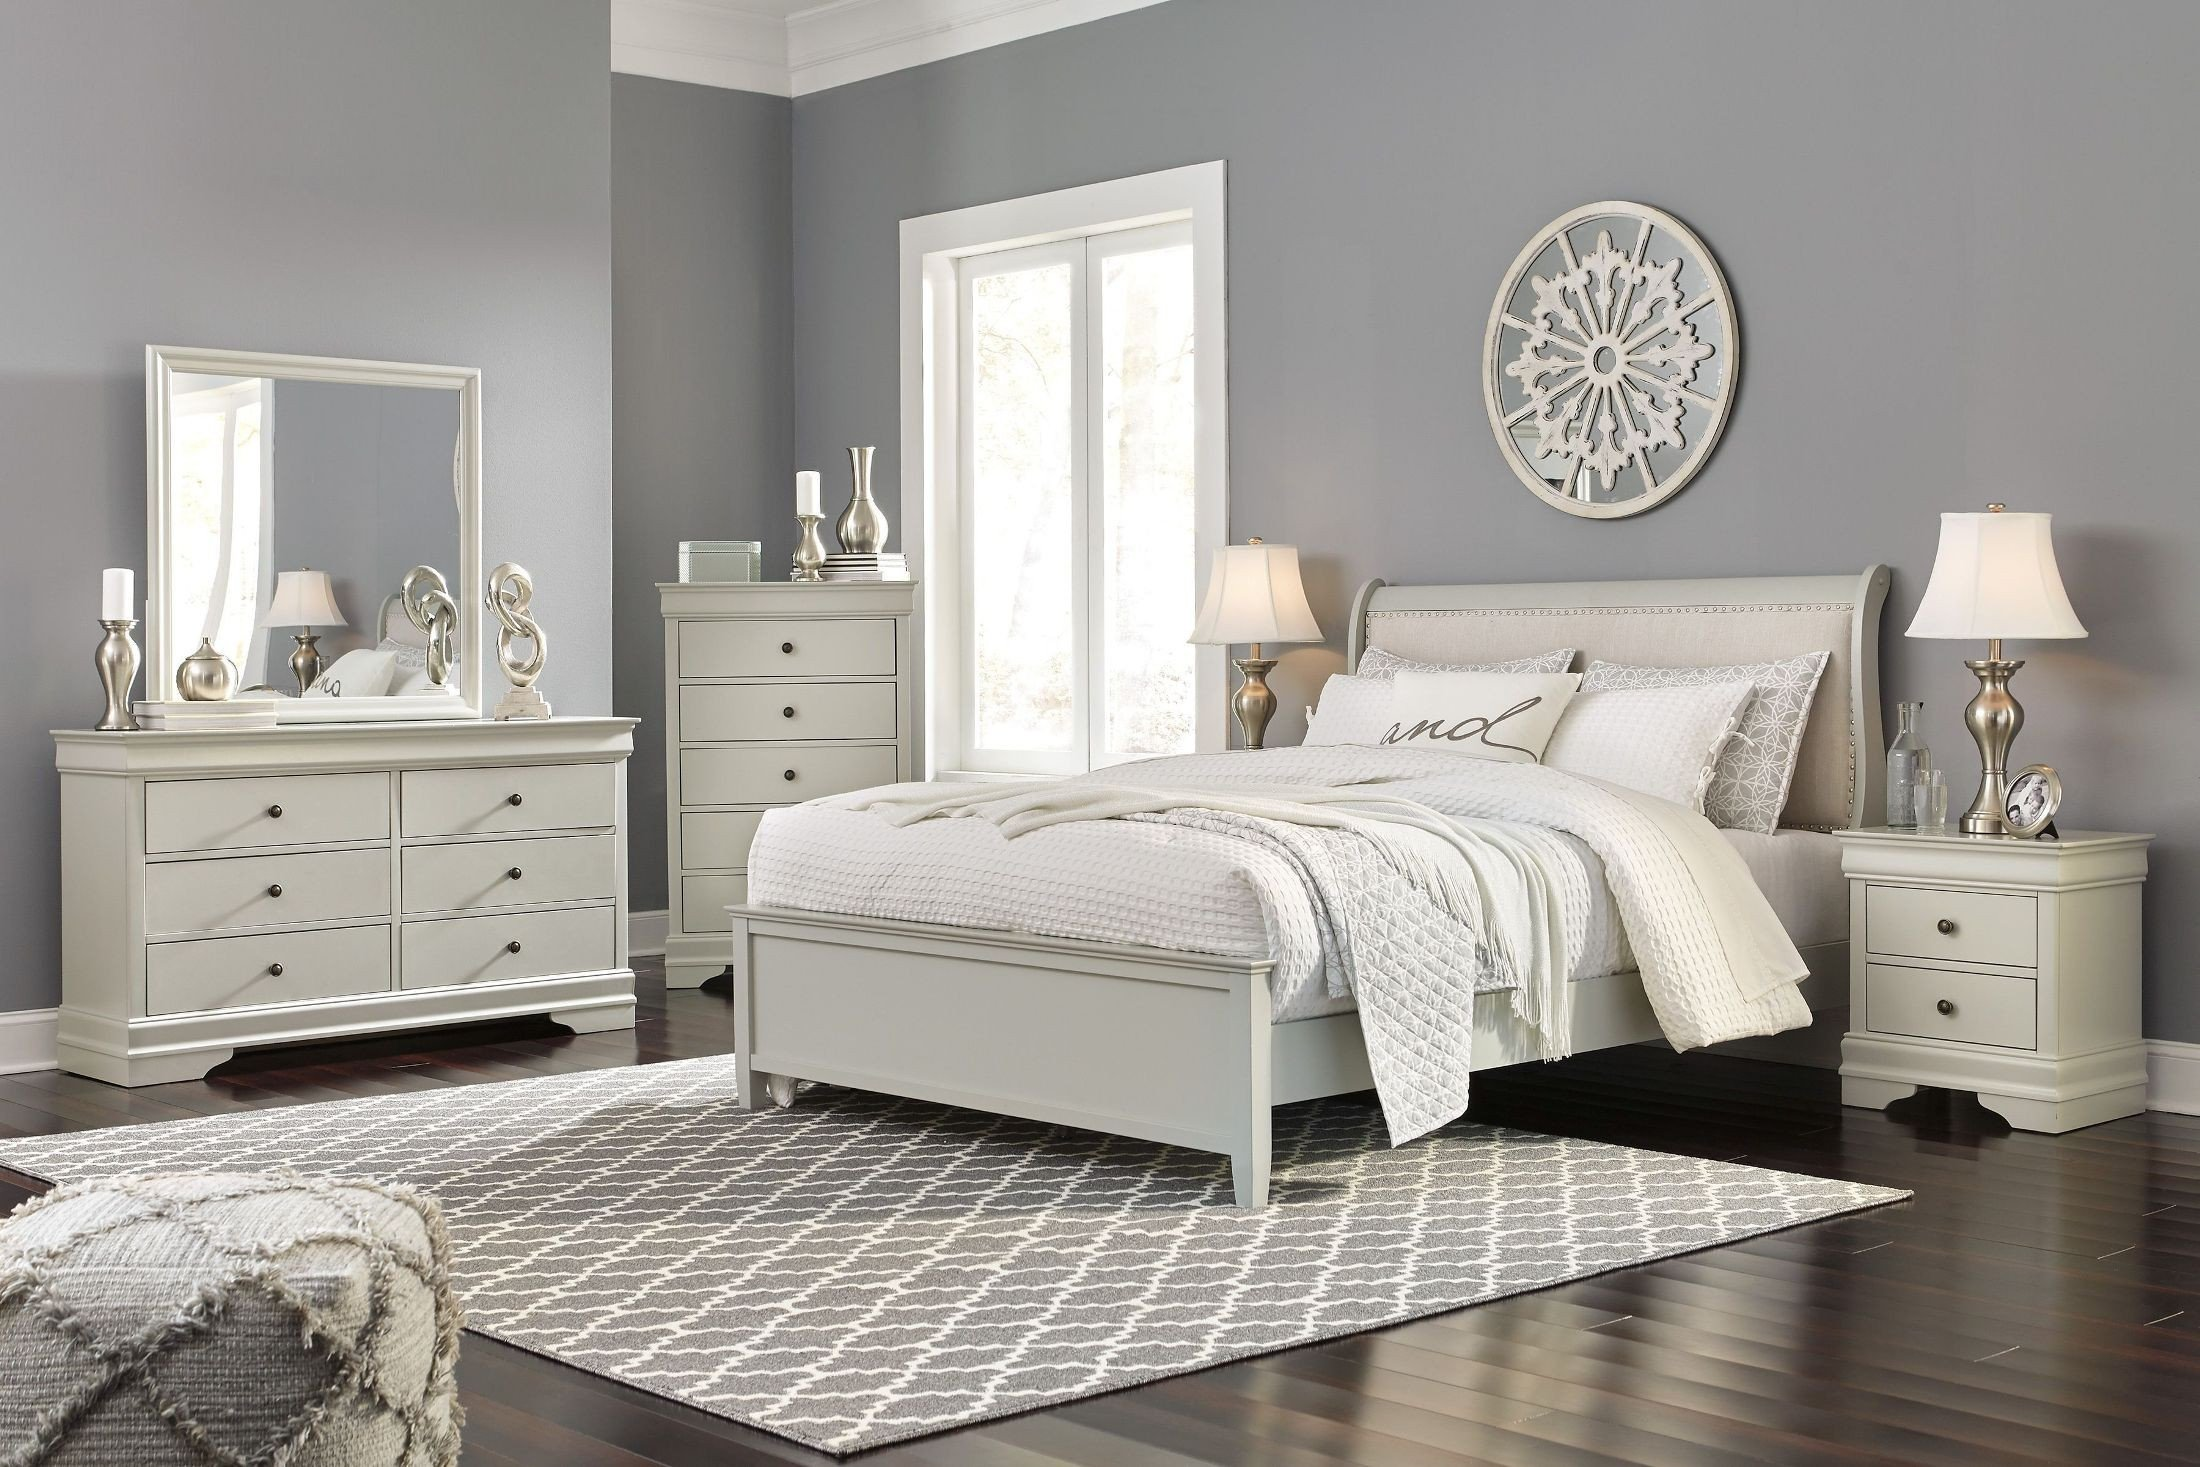 King Bedroom Set with Mattress Awesome Emma Mason Signature Jarred 5 Piece Sleigh Bedroom Set In Gray